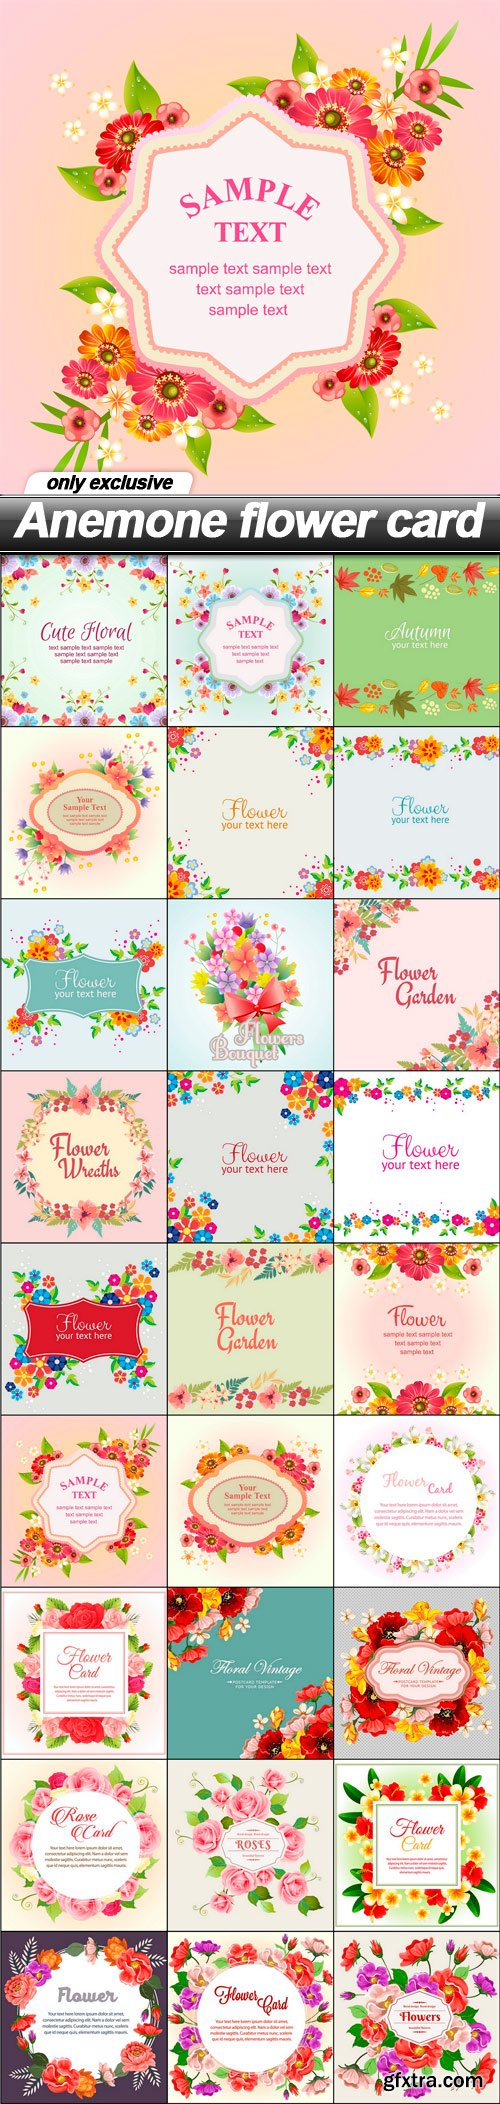 Anemone flower card - 27 EPS